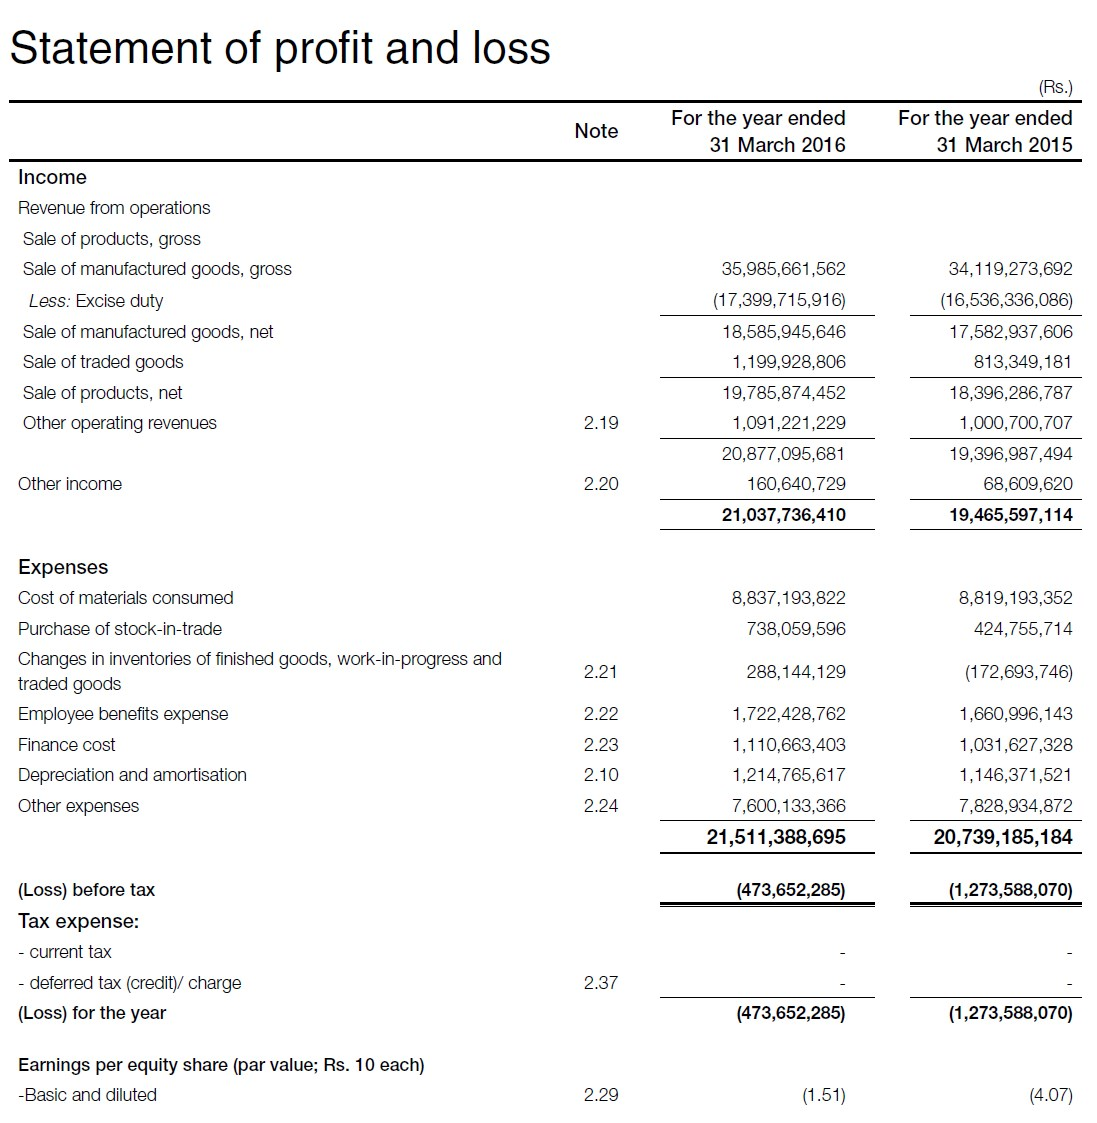 SABMiller India Ltd again in the red, but the losses are decreasing